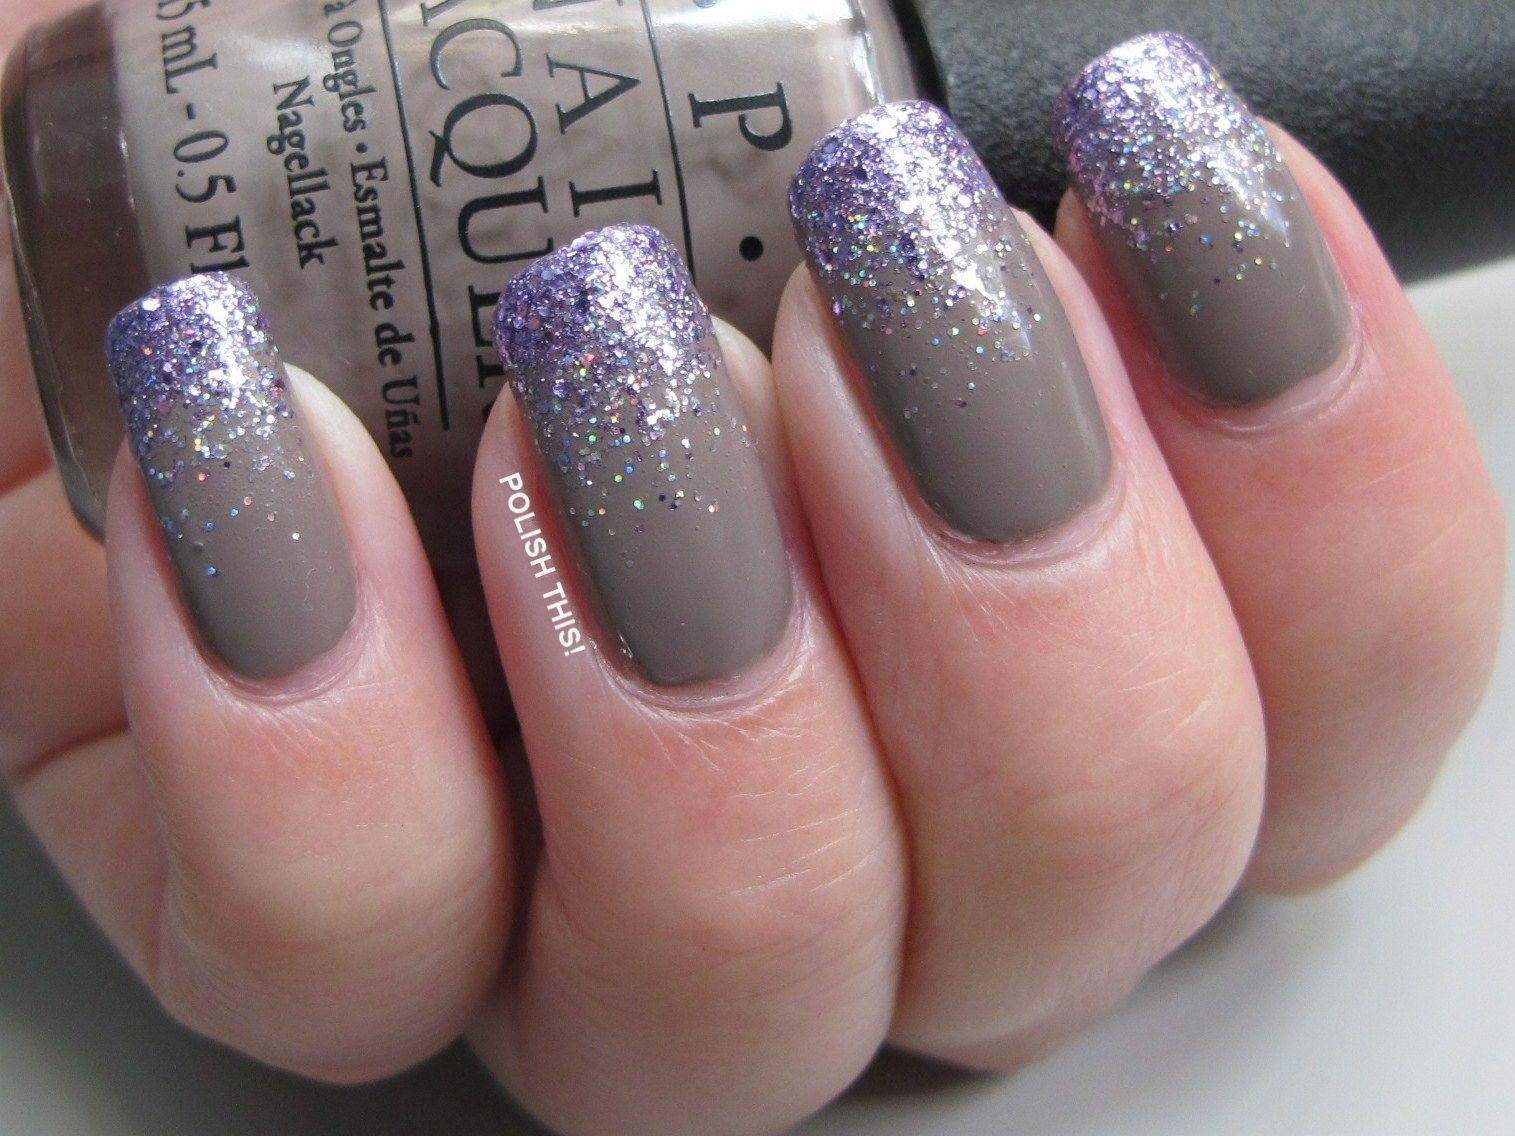 Polish this!: OPI Berlin There Done That | Nails | Pinterest | OPI ...